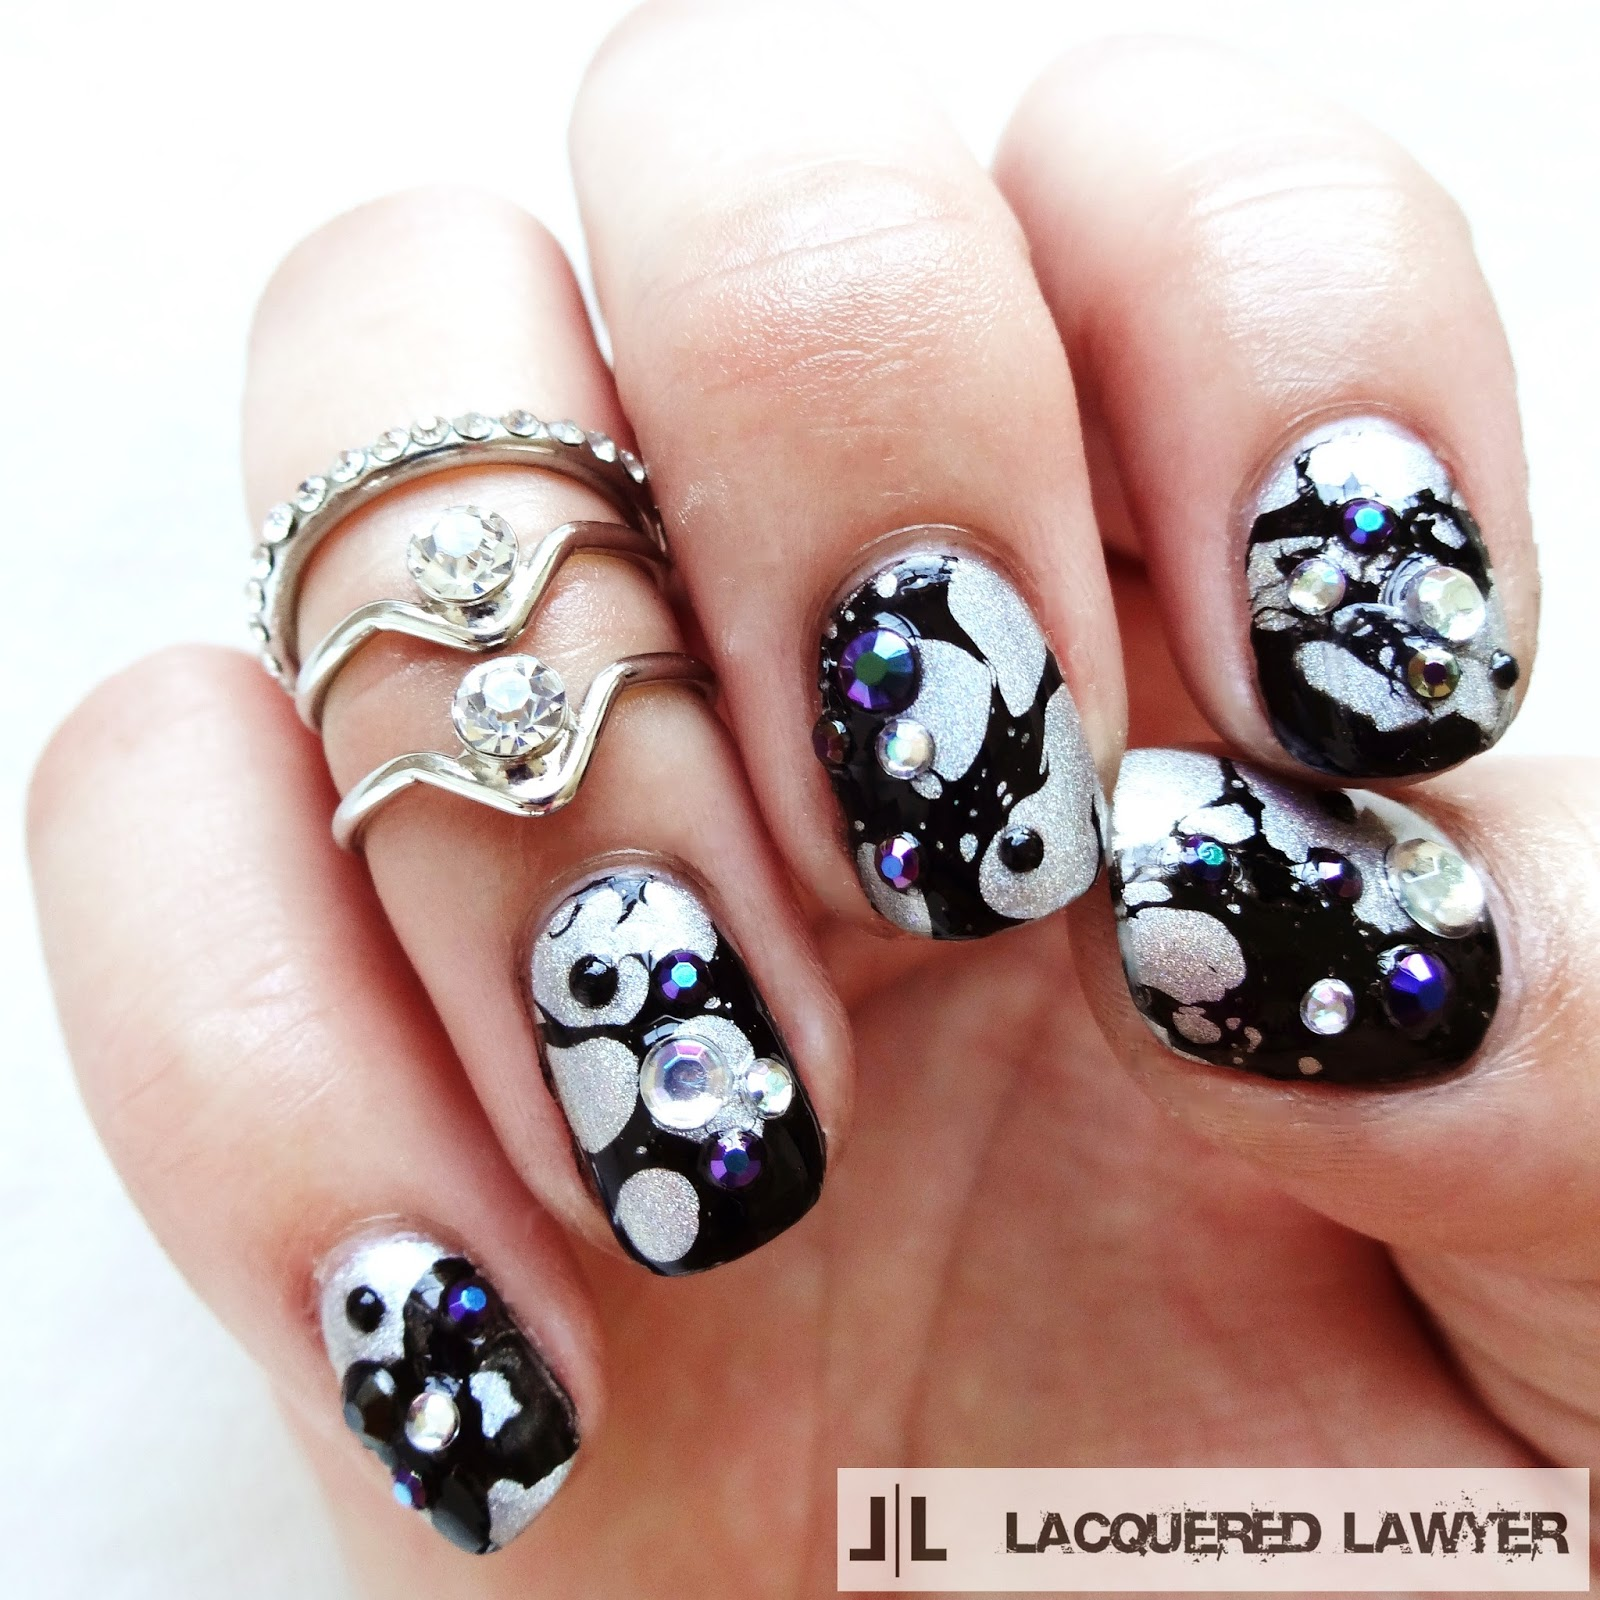 Holoe Water Spotting Nail Art